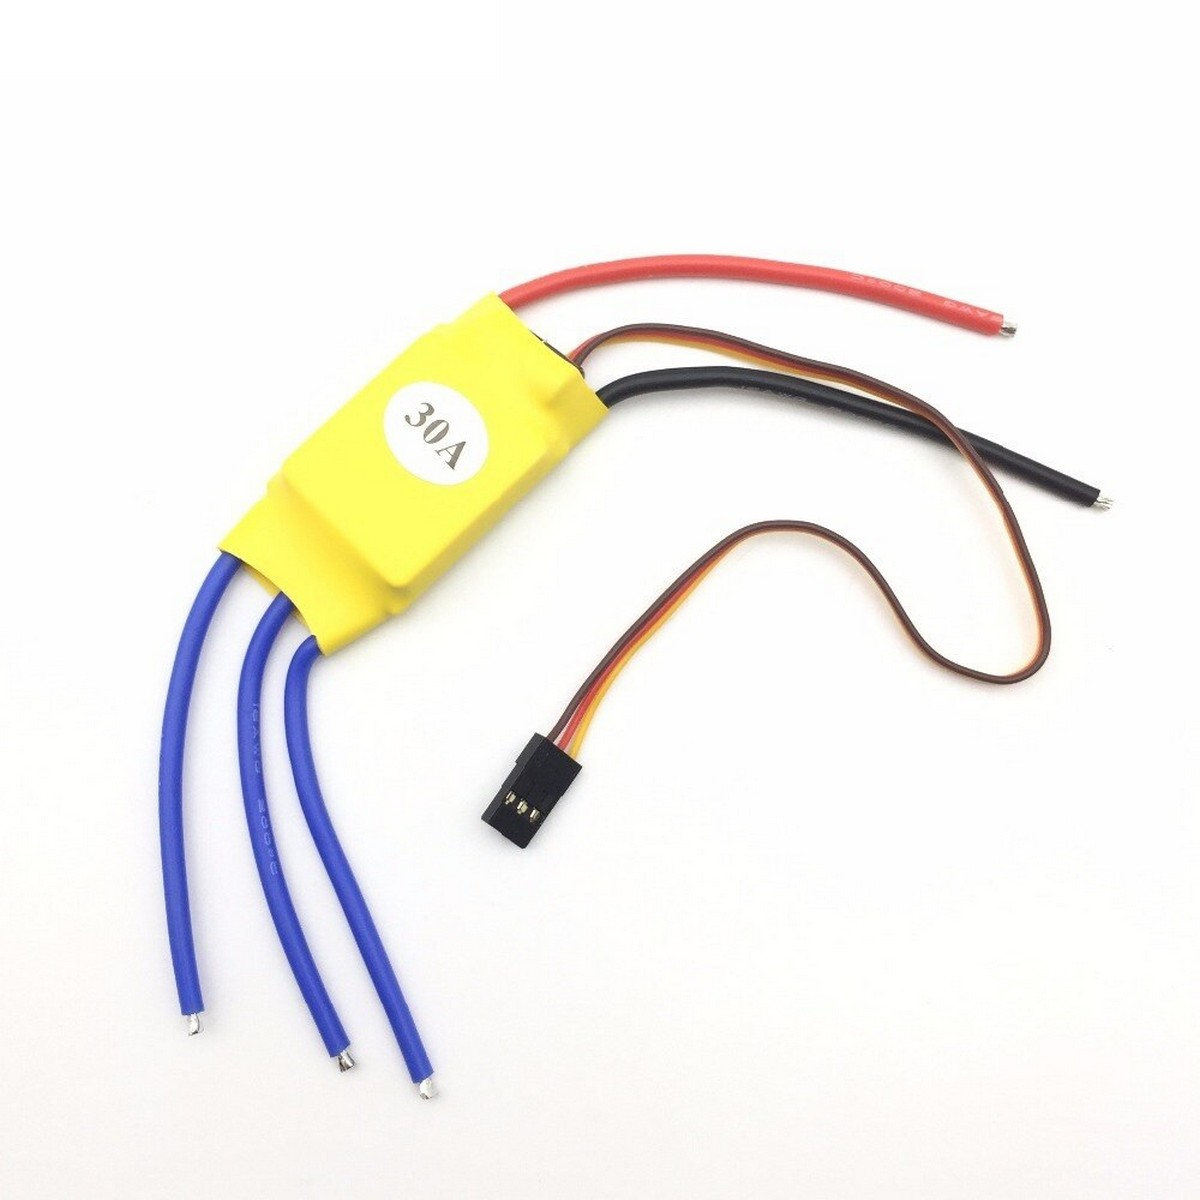 Electronic Speed Control (ESC) 30 Amp 30A Brushless RC BEC ESC Brushless Motor Speed Controller T-rex 450 V2 Helicopter Boat I403 Airplanes Parts & Accessories